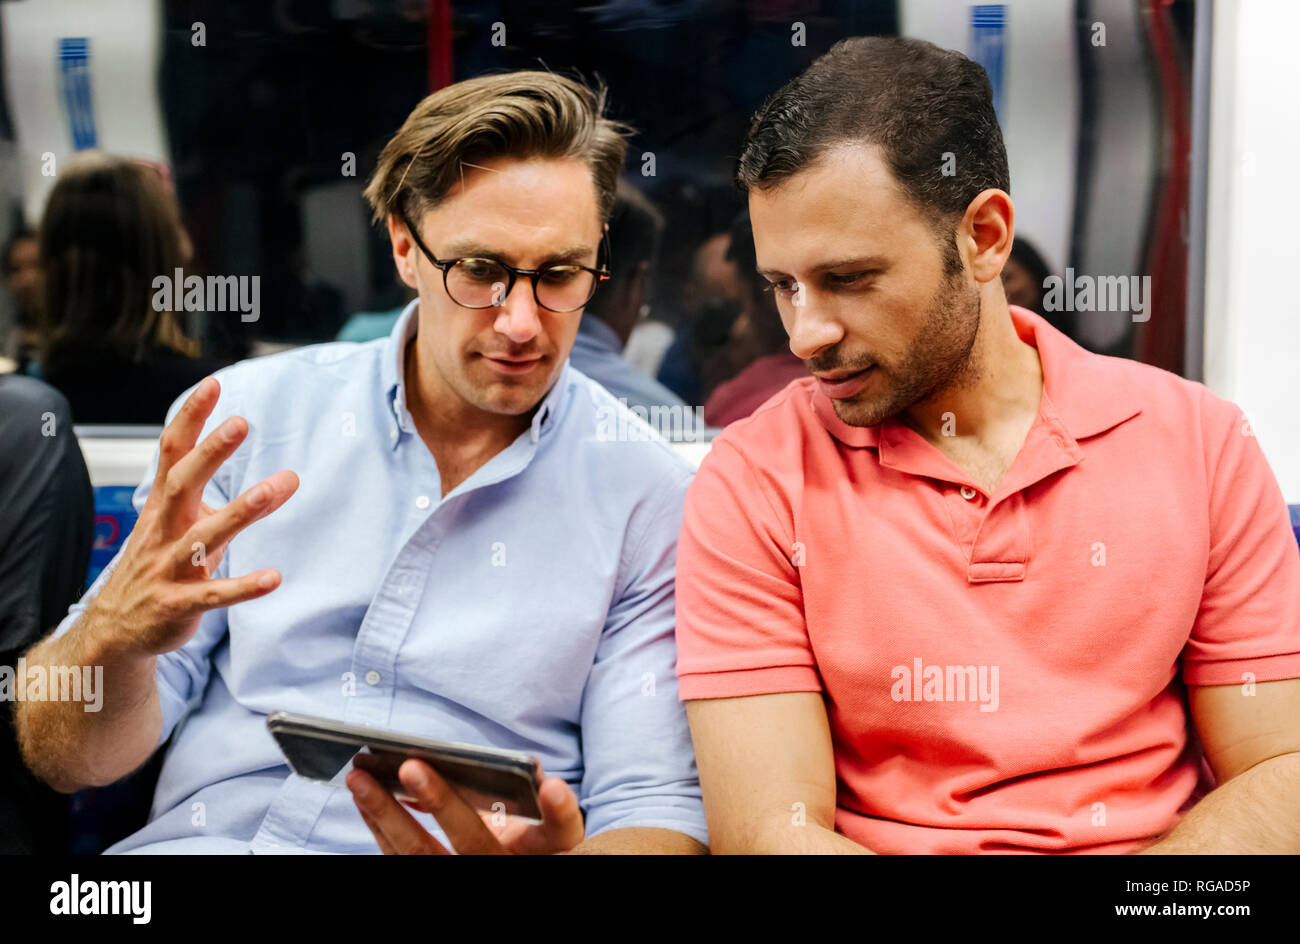 Portrait of two friends sharing cell phone in subway Stock Photo